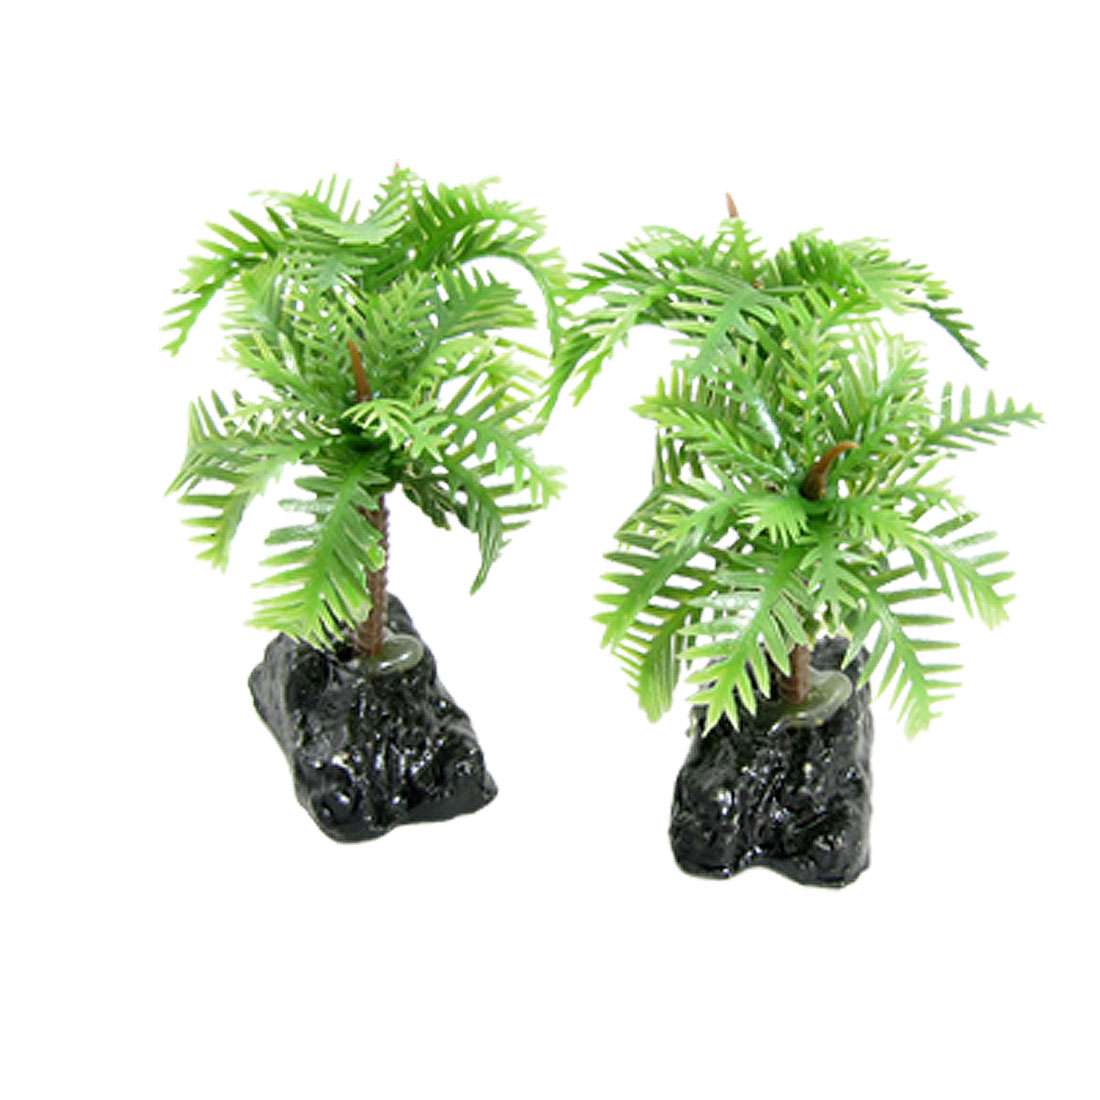 Fish Tank Green Plasic Coconut Tree Ornament w Ceramic Base